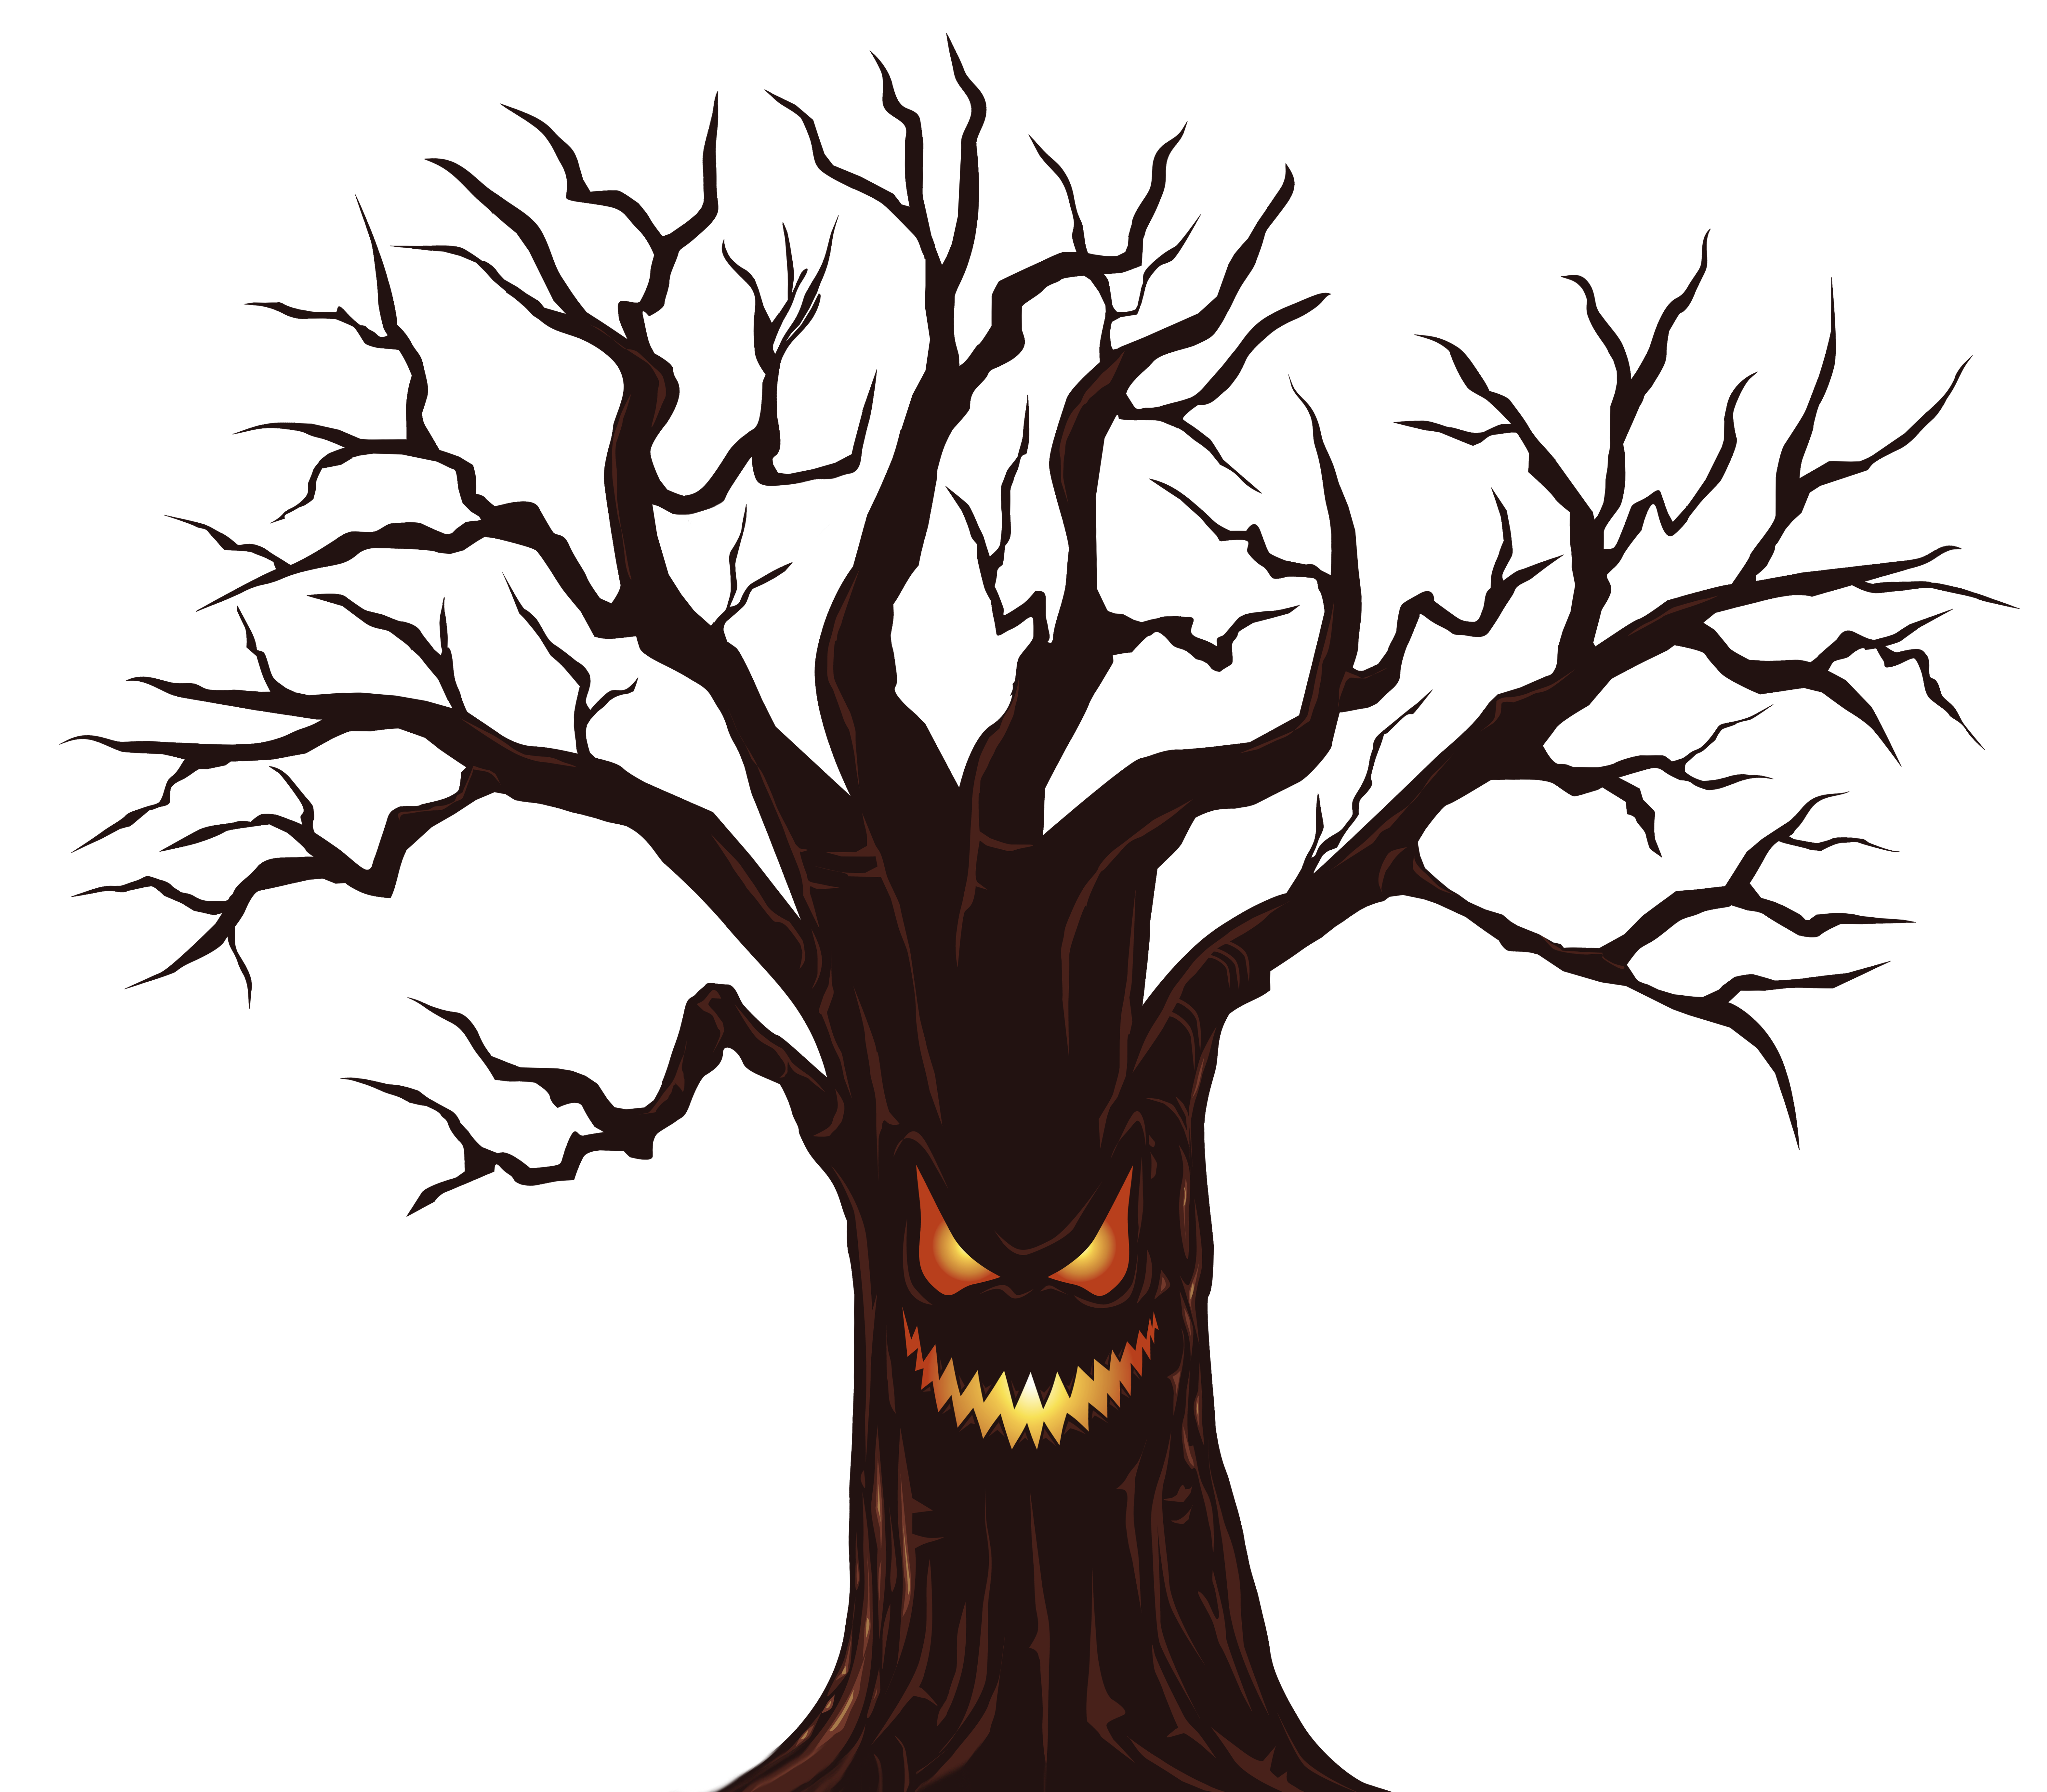 Spooky Tree Cliparts   Free download on ClipArtMag